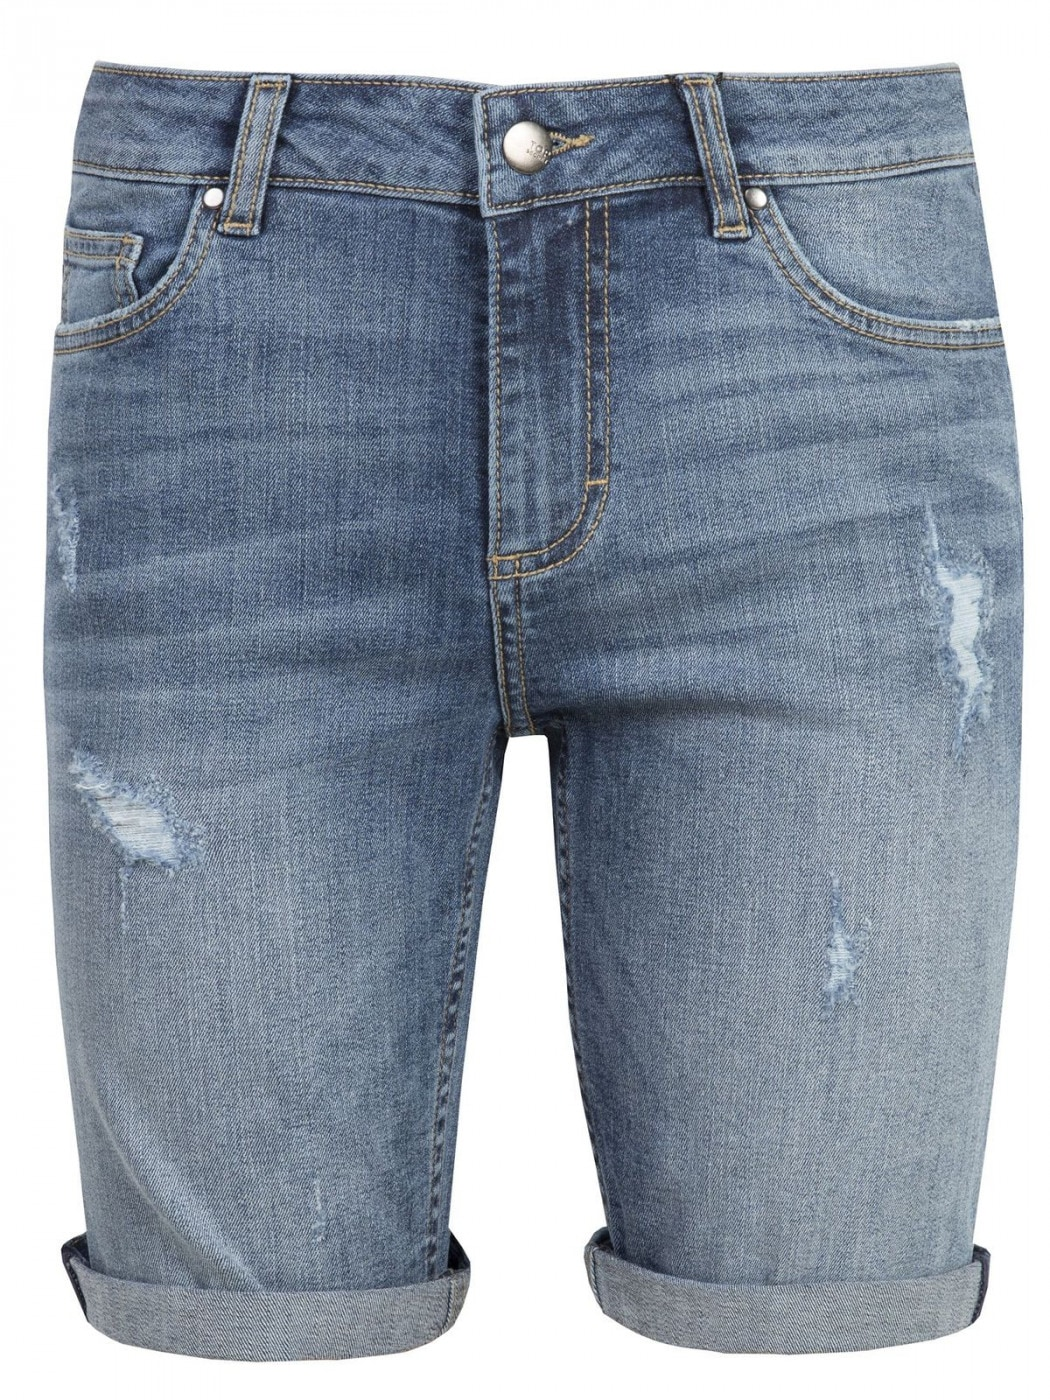 Women's shorts Top Secret Jeans